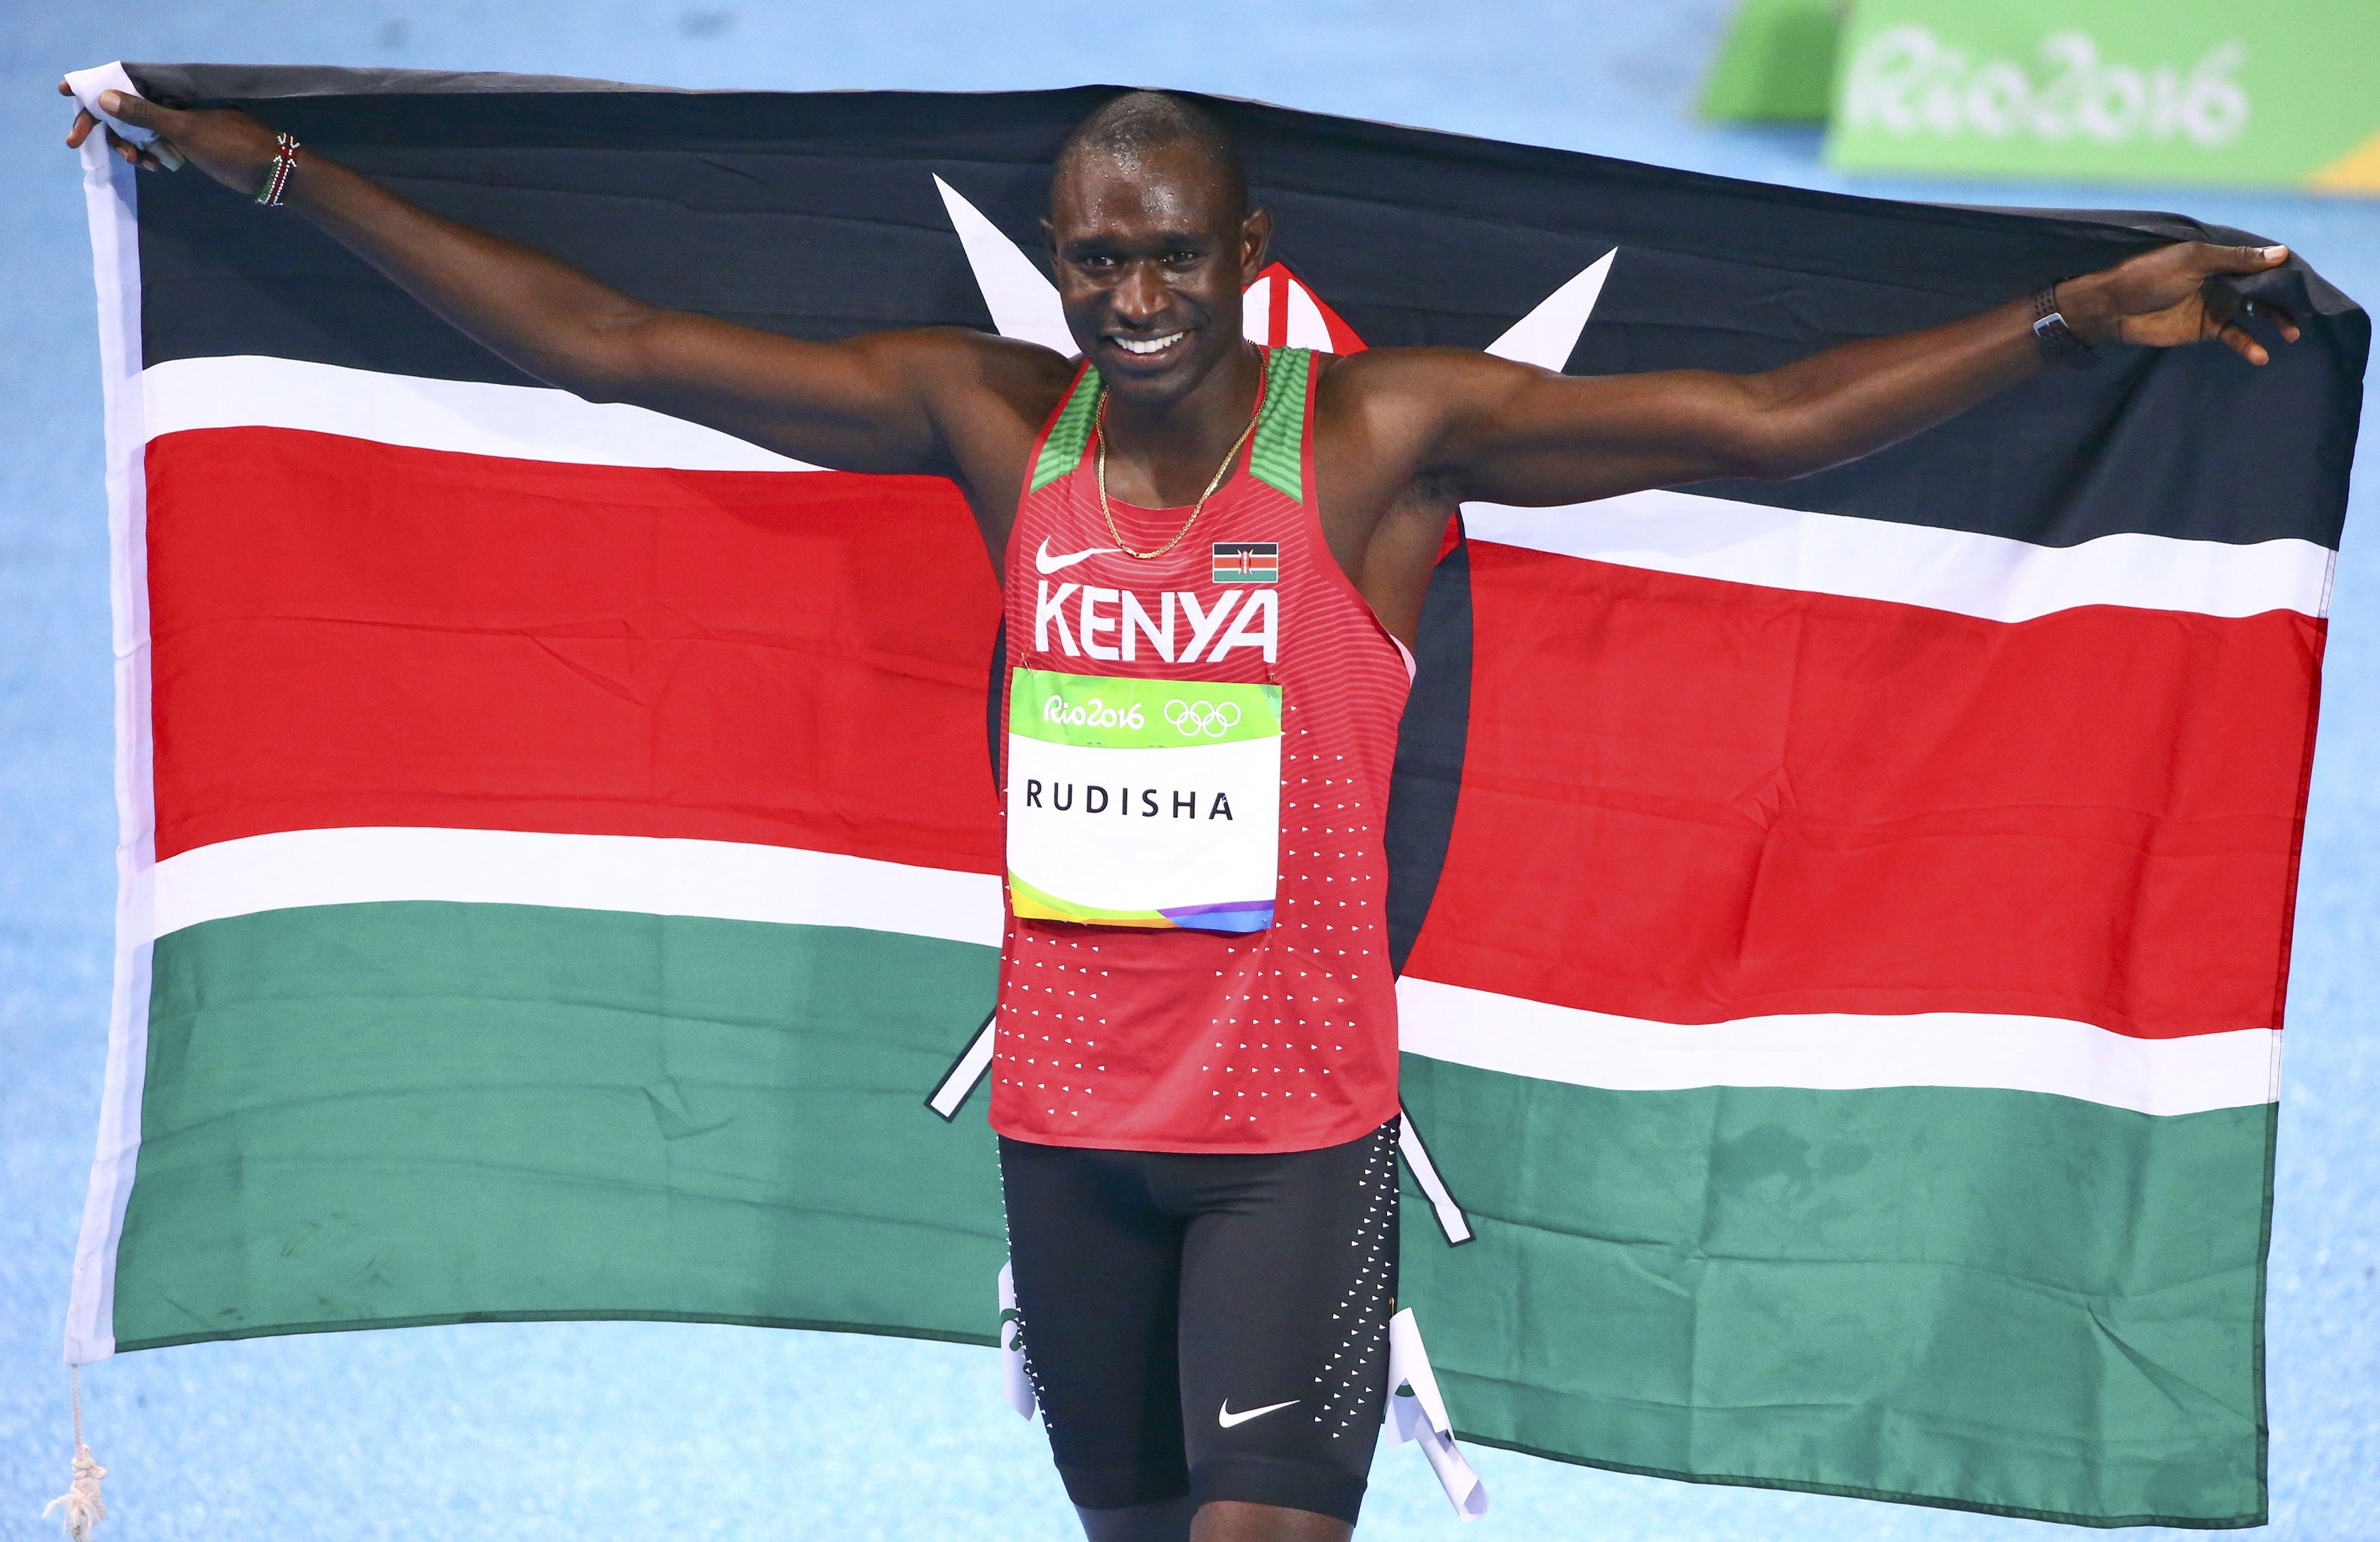 Kenya was ranked 15 globally and won 13 medals at the 2016 Rio Olympic Games.